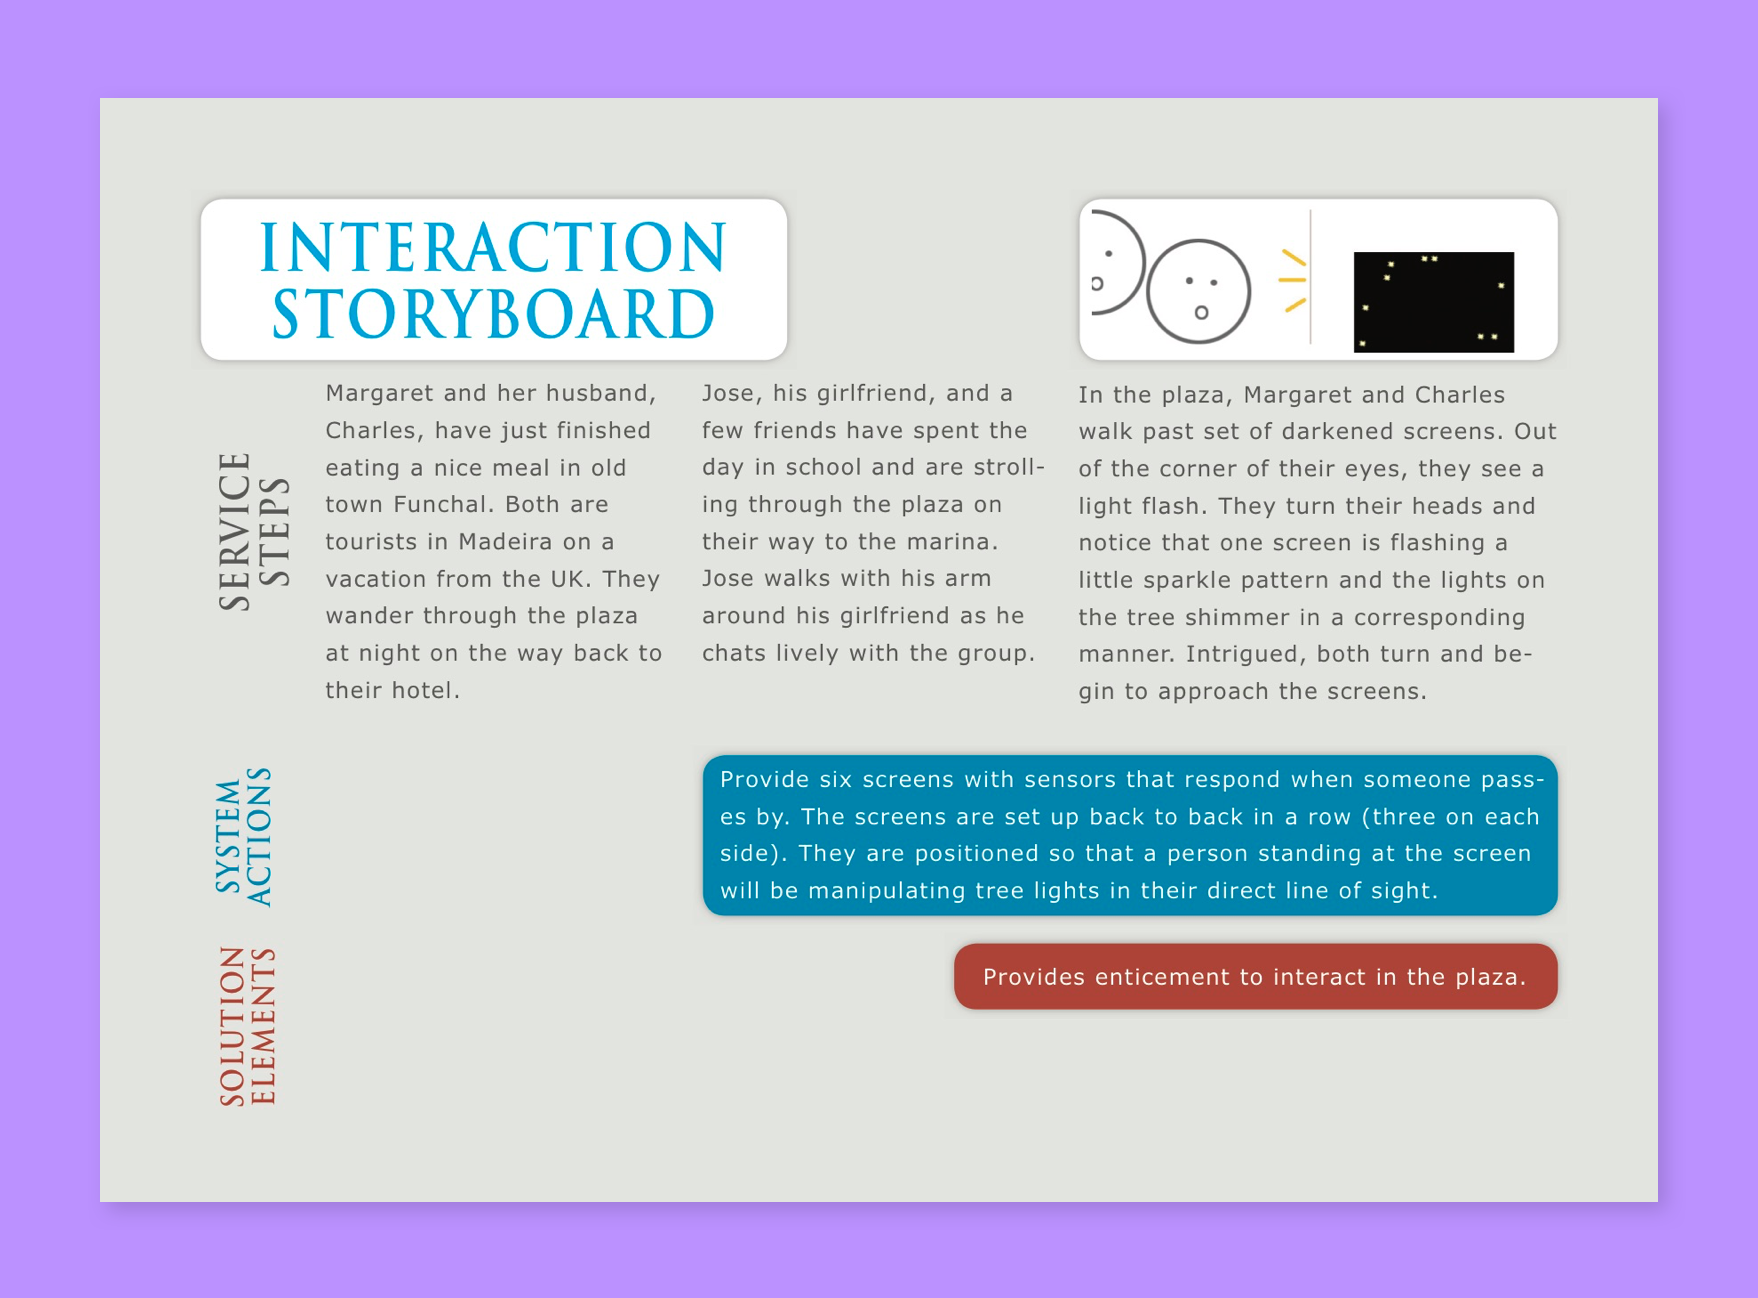 plaza-interaction-storyboard-01.png